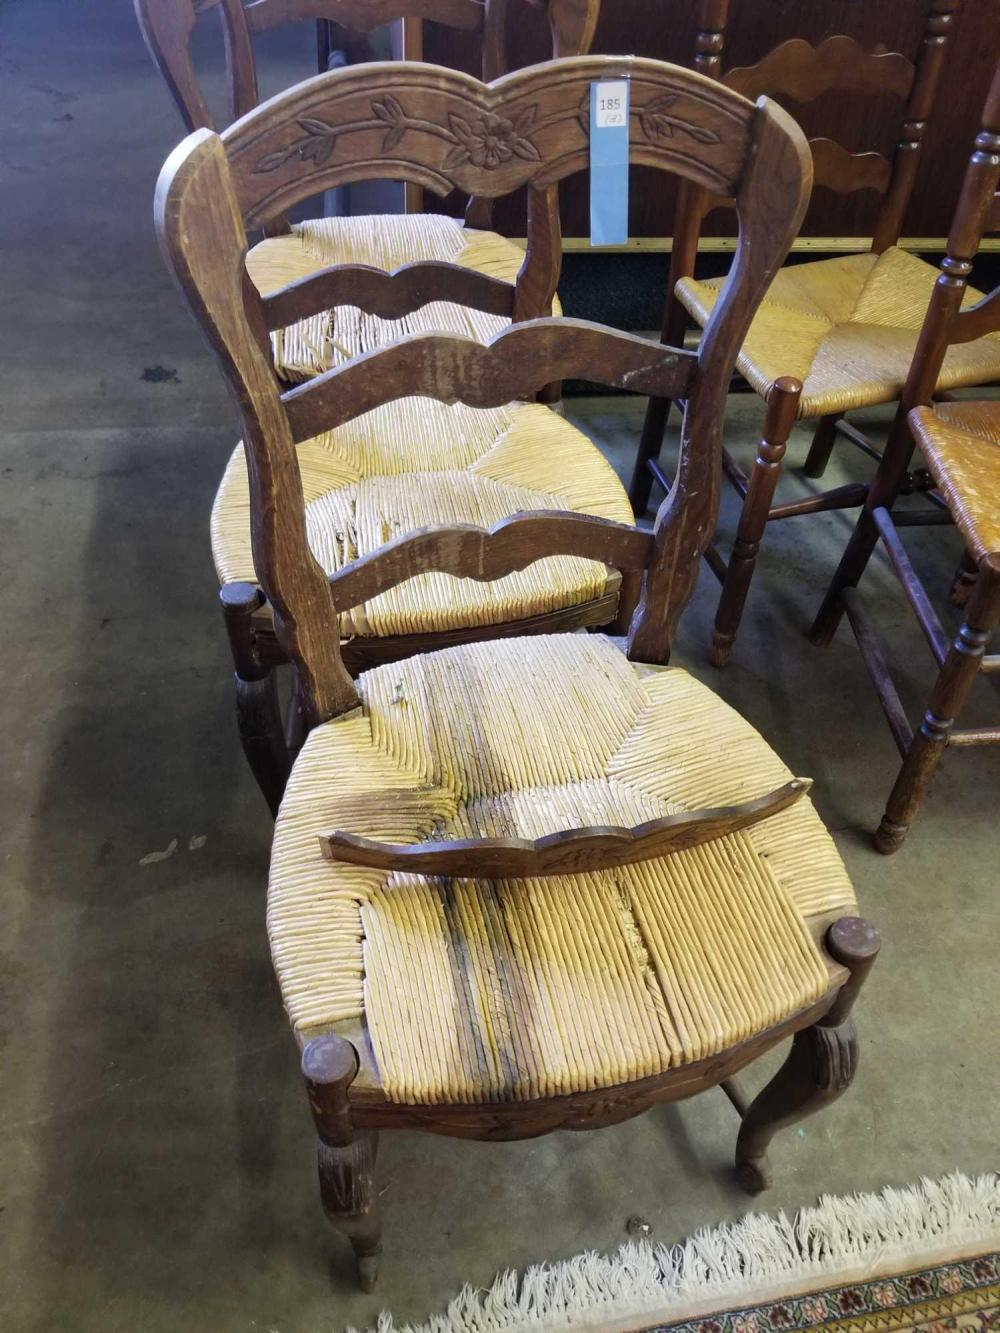 FRENCH STYLE DINING CHAIRS W/ WOVEN SEA GRASS SEATS - 3 ITEMS